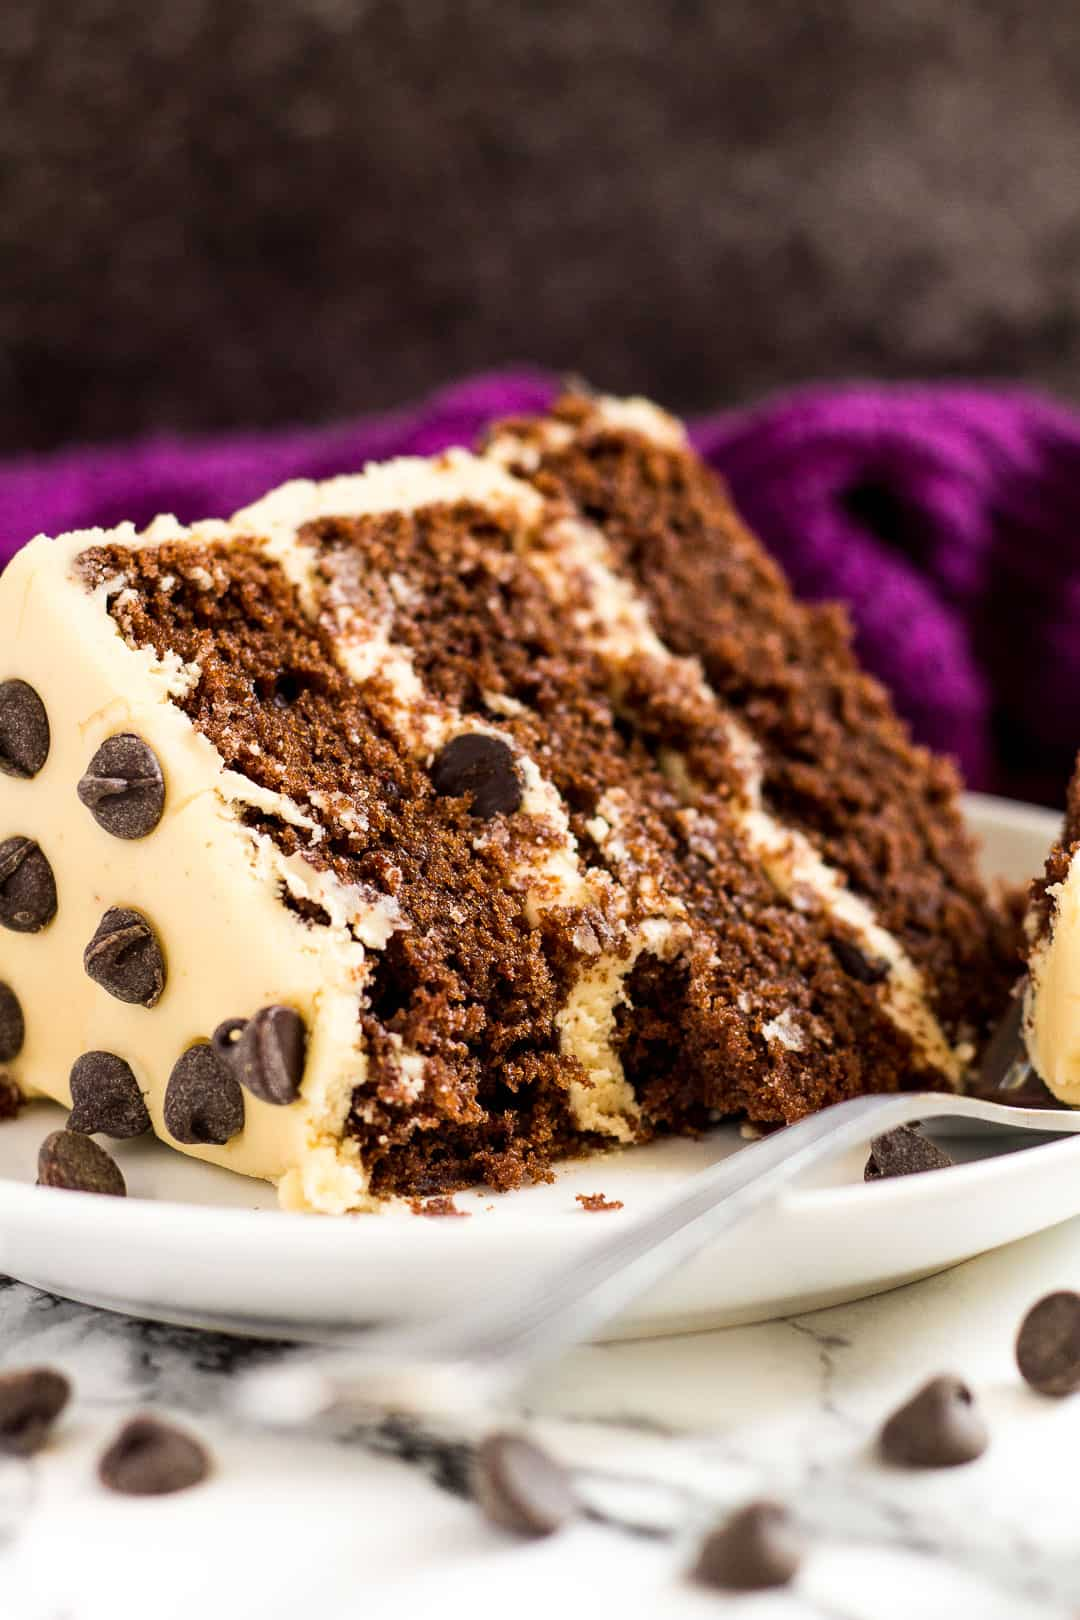 Slice of mocha layer cake on a small white plate with a fork.